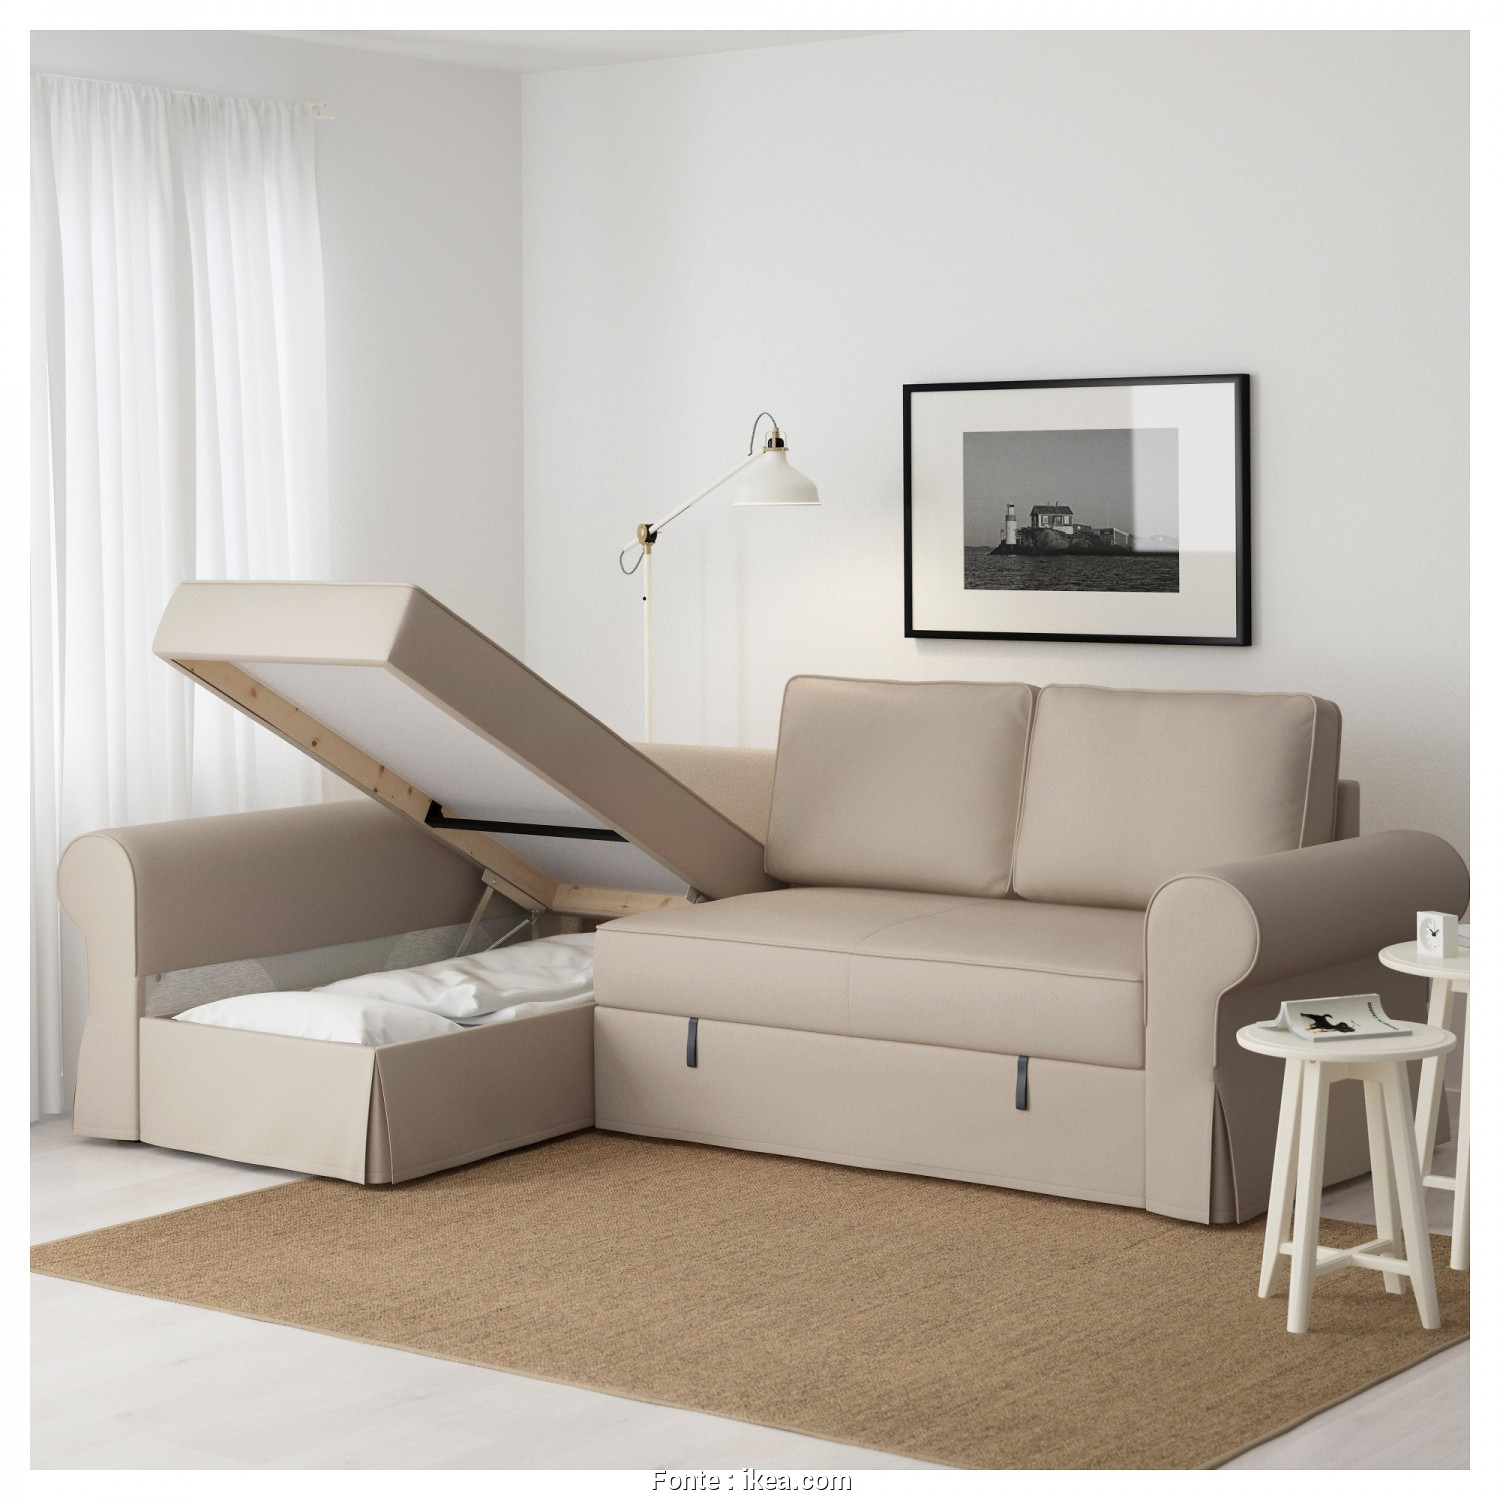 Ikea Backabro Sofa, Assembly Instructions, Ideale IKEA BACKABRO Sofa, With Chaise Longue Readily Converts Into A Bed